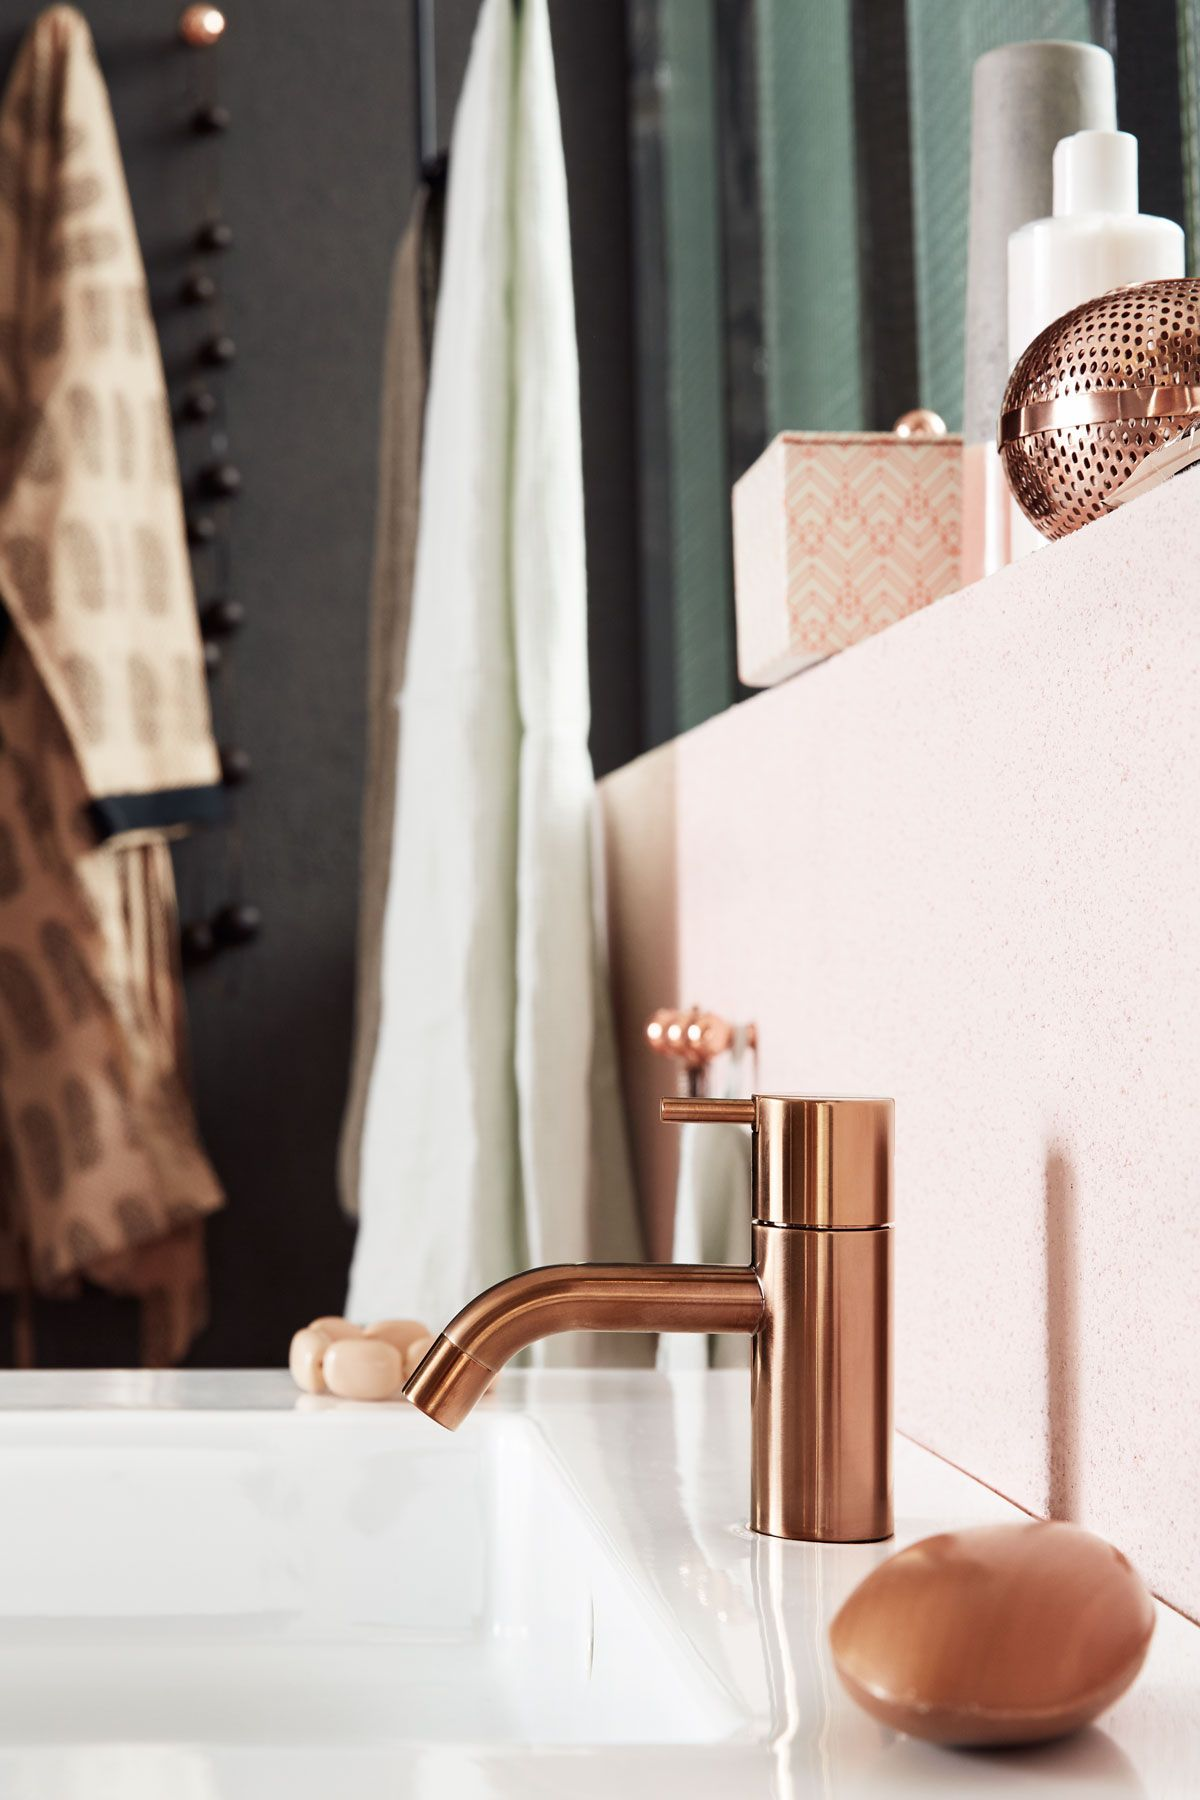 info motif brass range wallmount tuscan series fixtures gingershirezaerocross hood gold brushed farmlandcanada grape faucets bathroom copper unlacquered